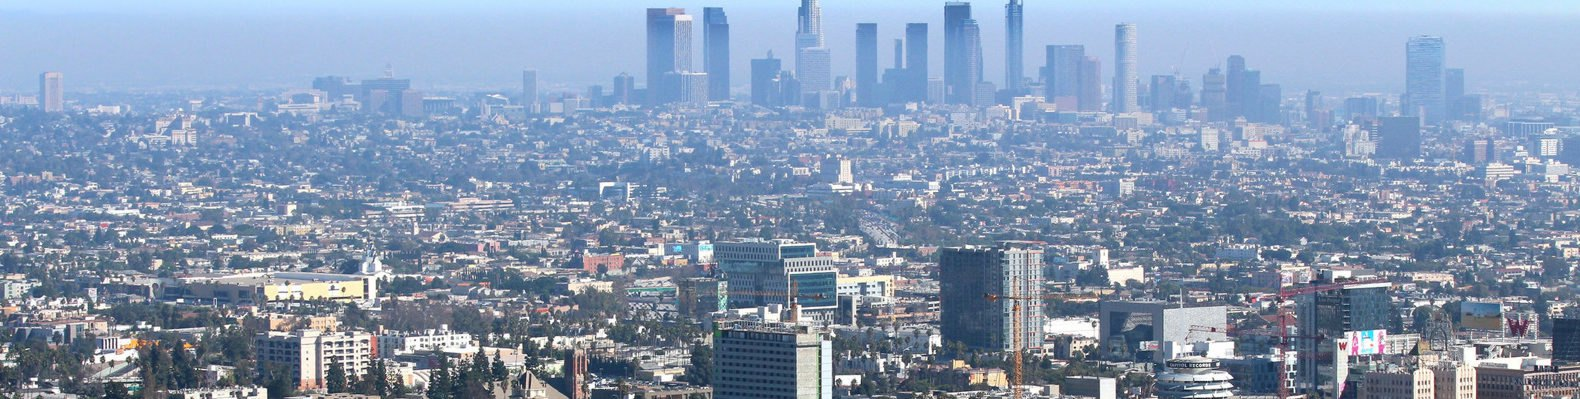 Cropped close-up of aerial view of Los Angeles with heavy smog